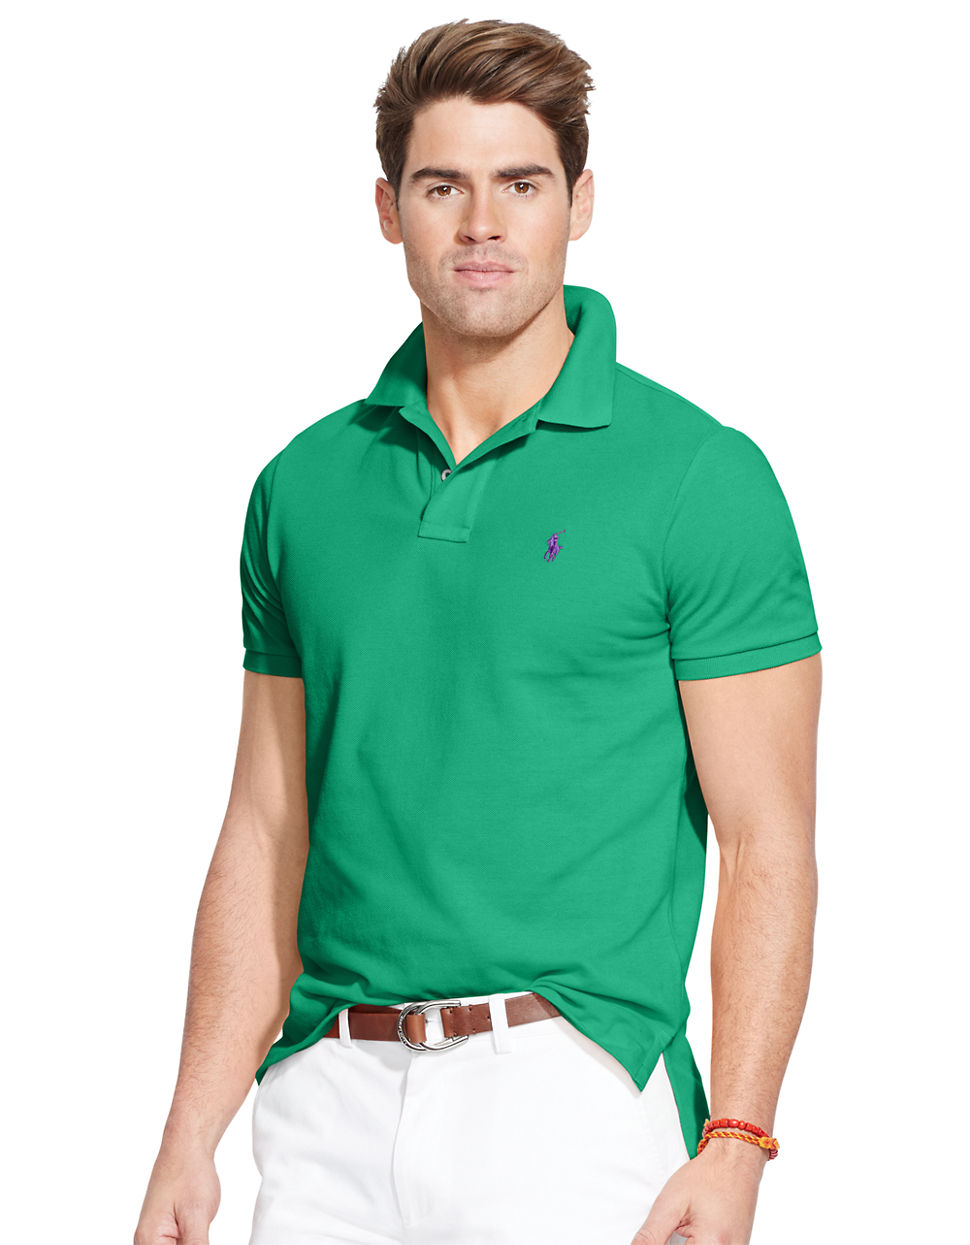 polo ralph lauren classic fit mesh polo shirt in green for. Black Bedroom Furniture Sets. Home Design Ideas